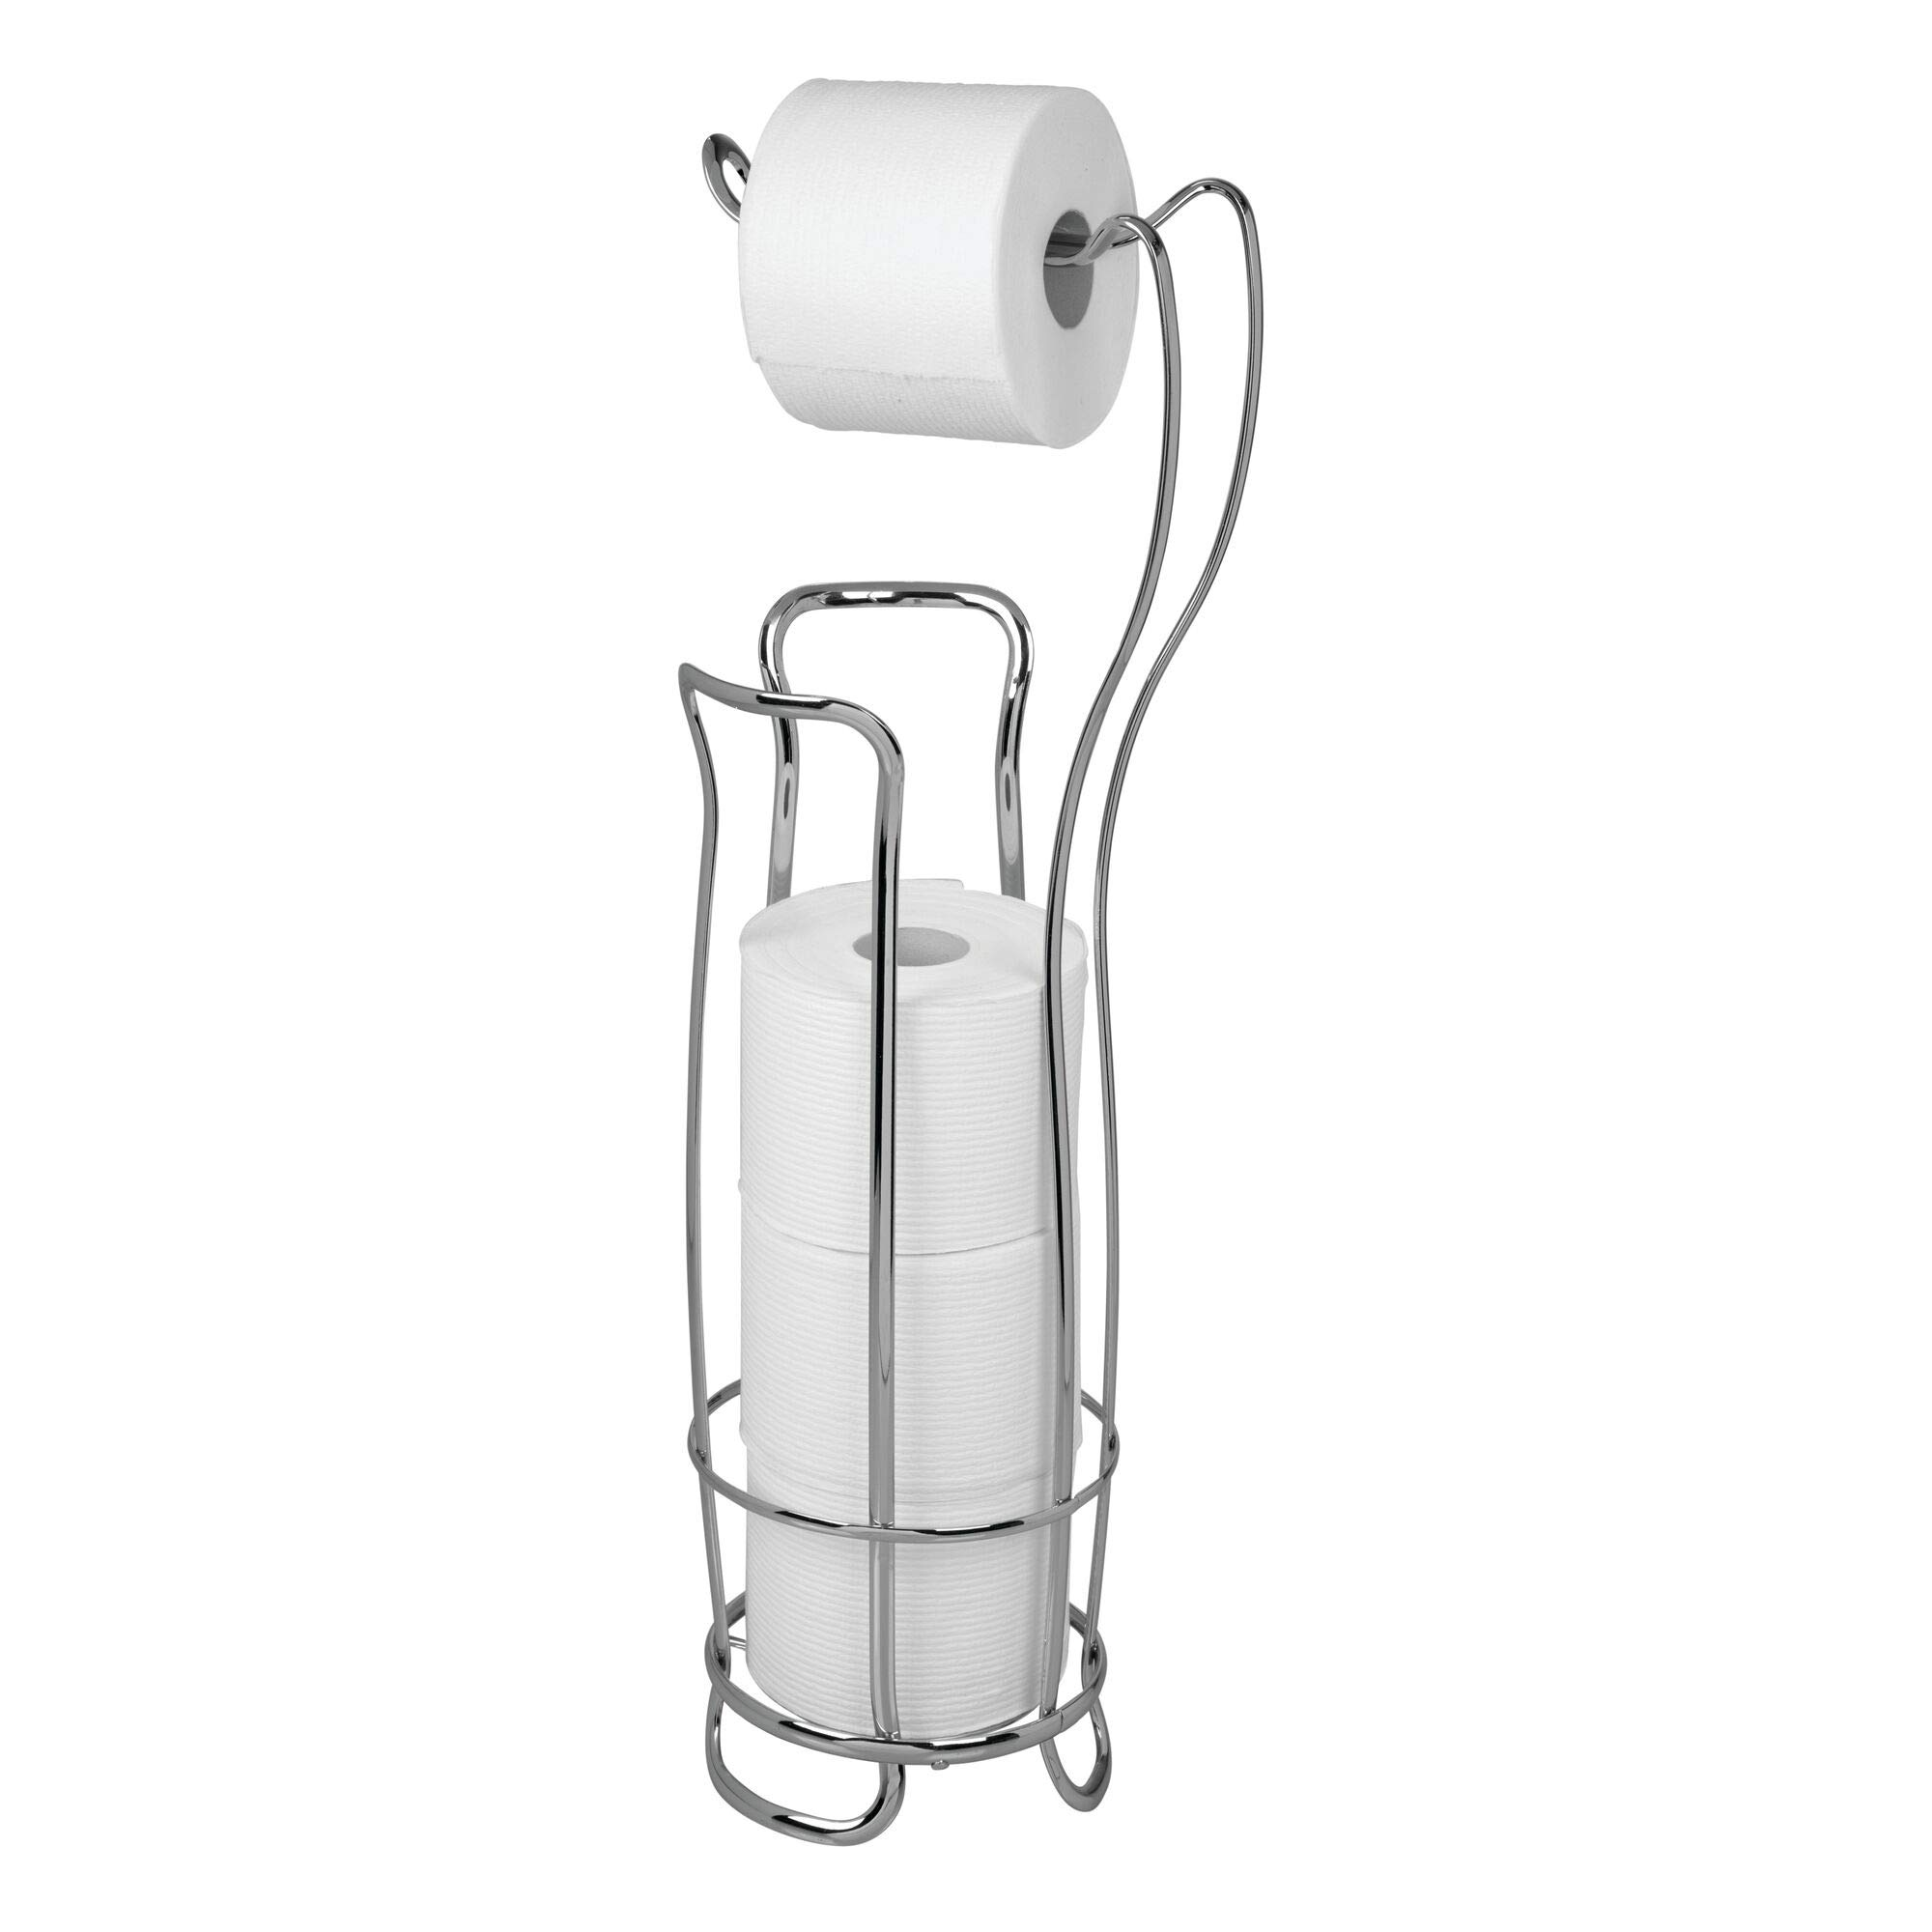 iDesign Axis Free Standing Toilet Paper Holder for Bathroom - Chrome